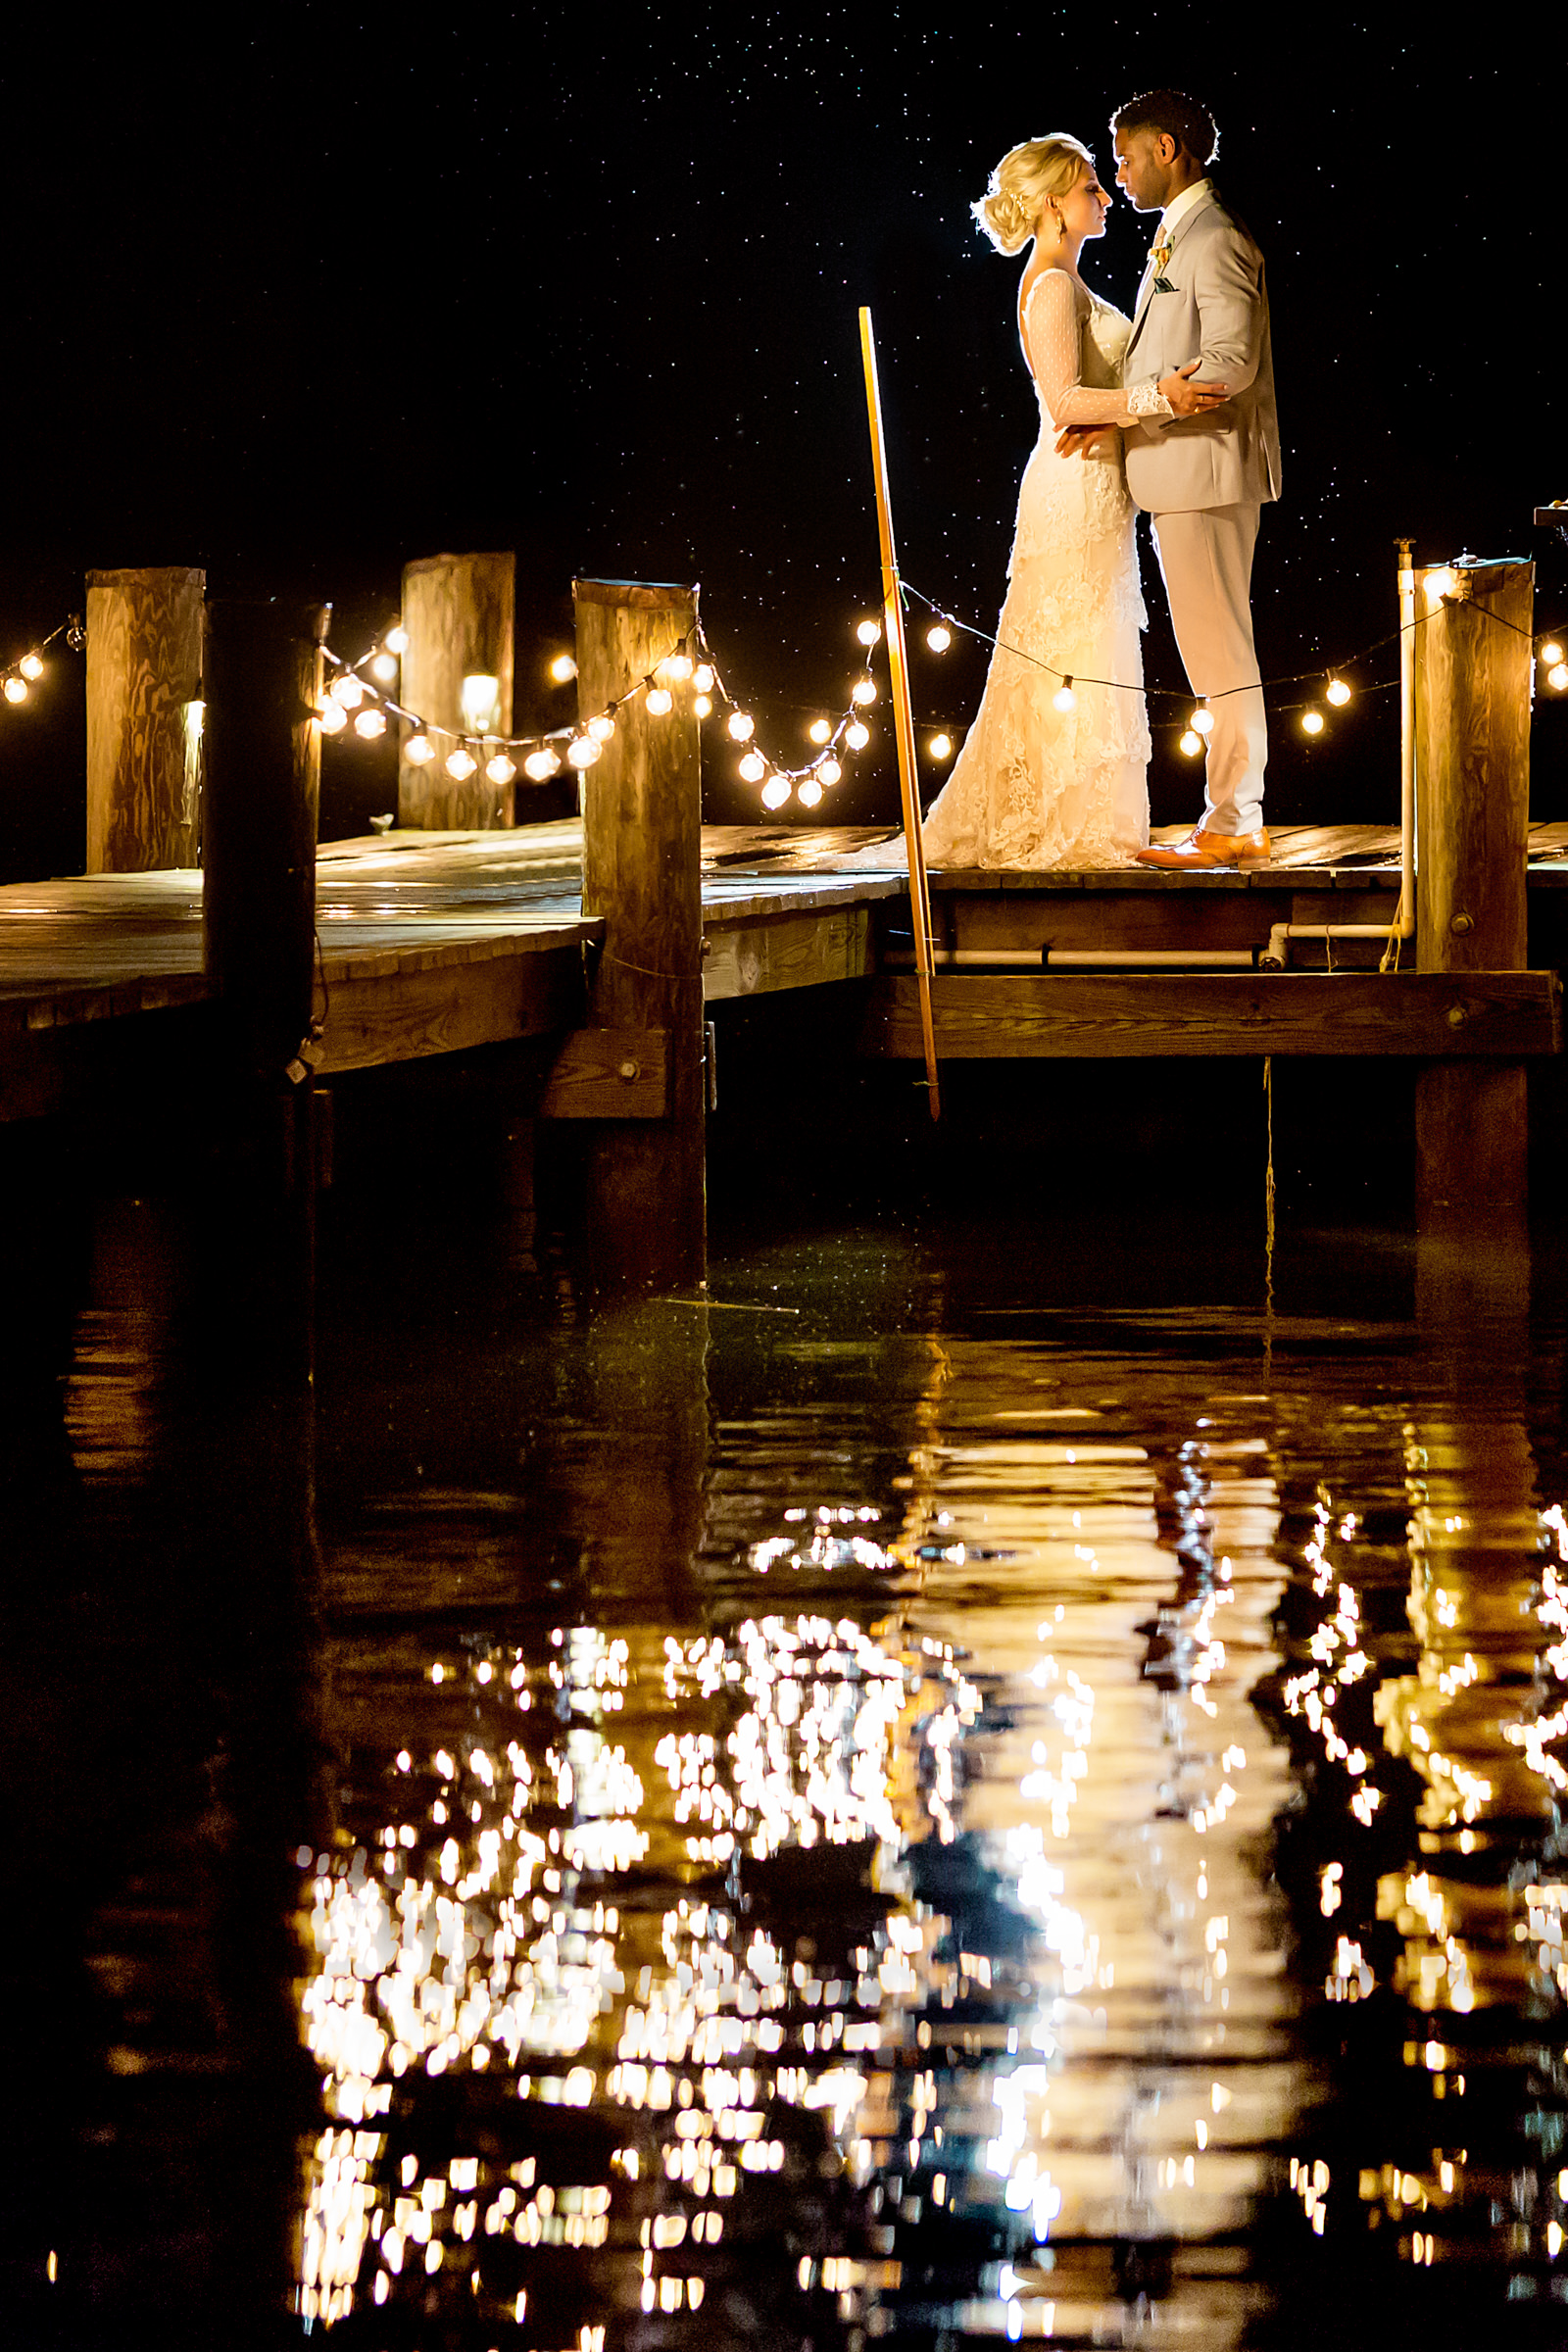 Face to face couple portrait outdoors nighttime with string lights - photo by Procopio Photography